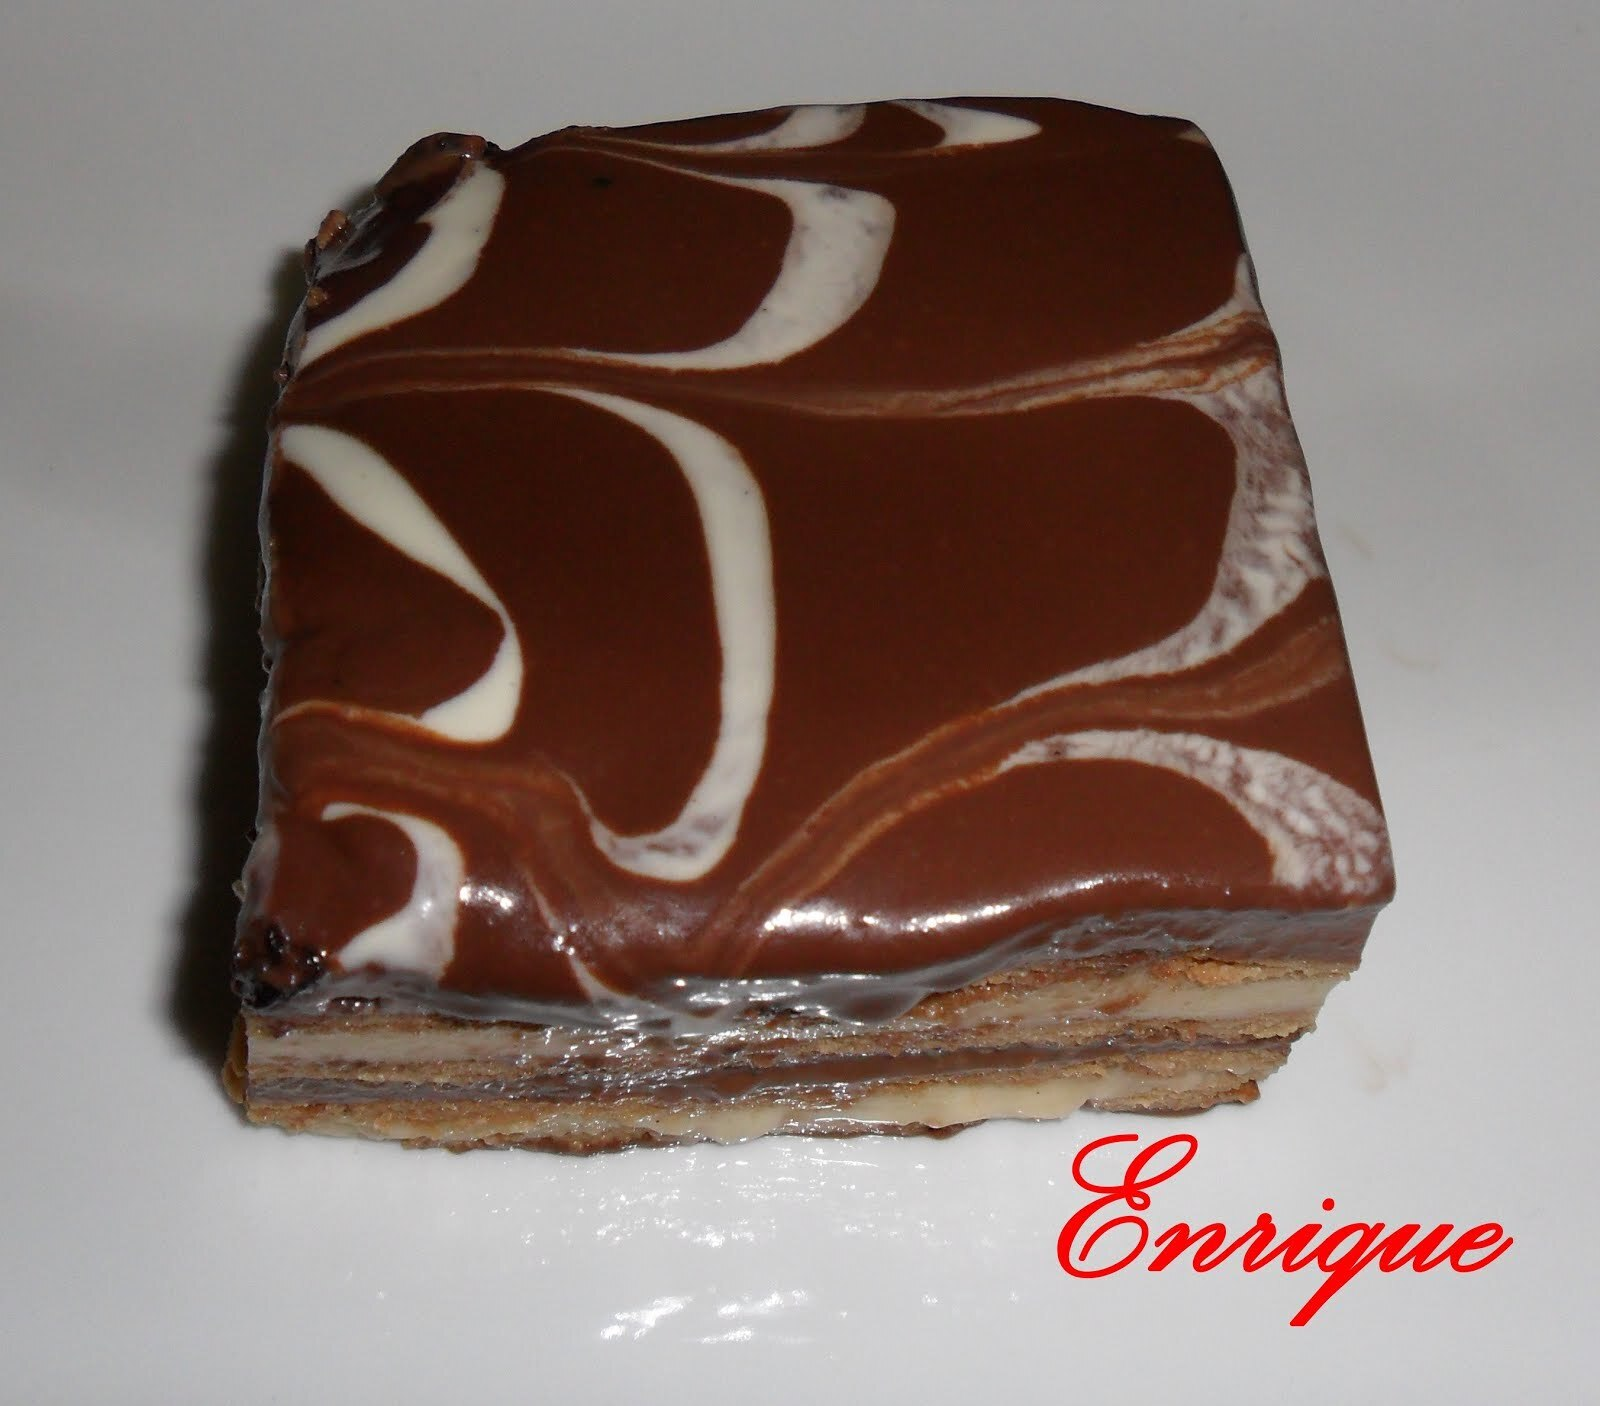 TARTA DE GALLETAS CREMA Y CHOCOLATE